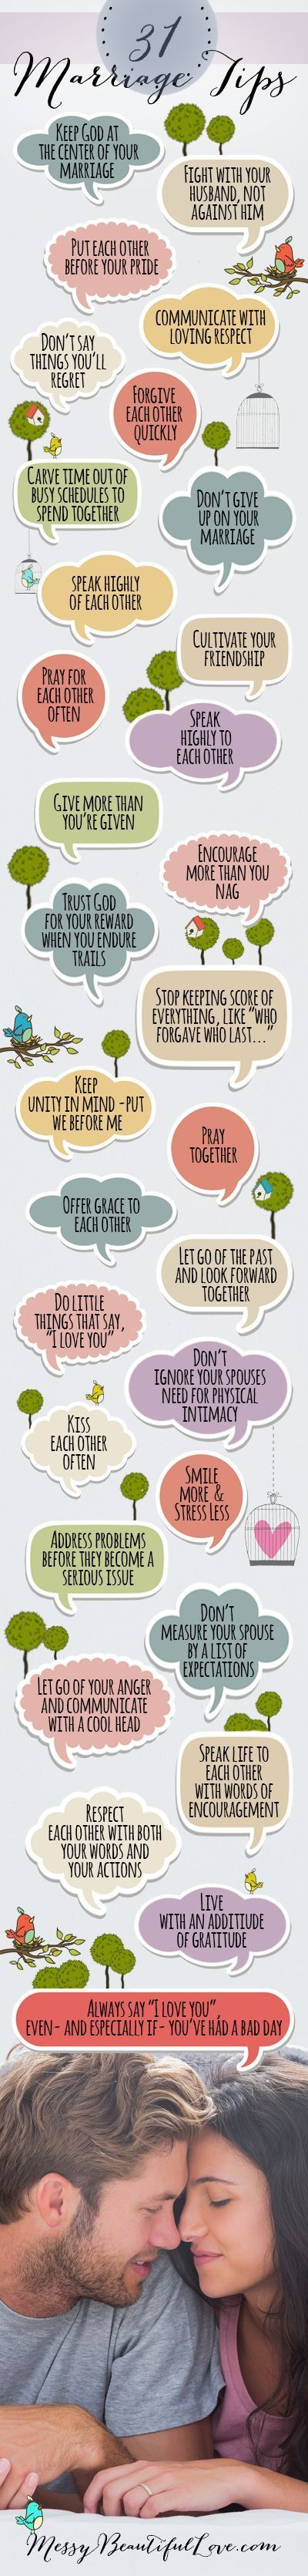 31 Marriage Tips! Maybe I can print out & put in a jar & we read one…